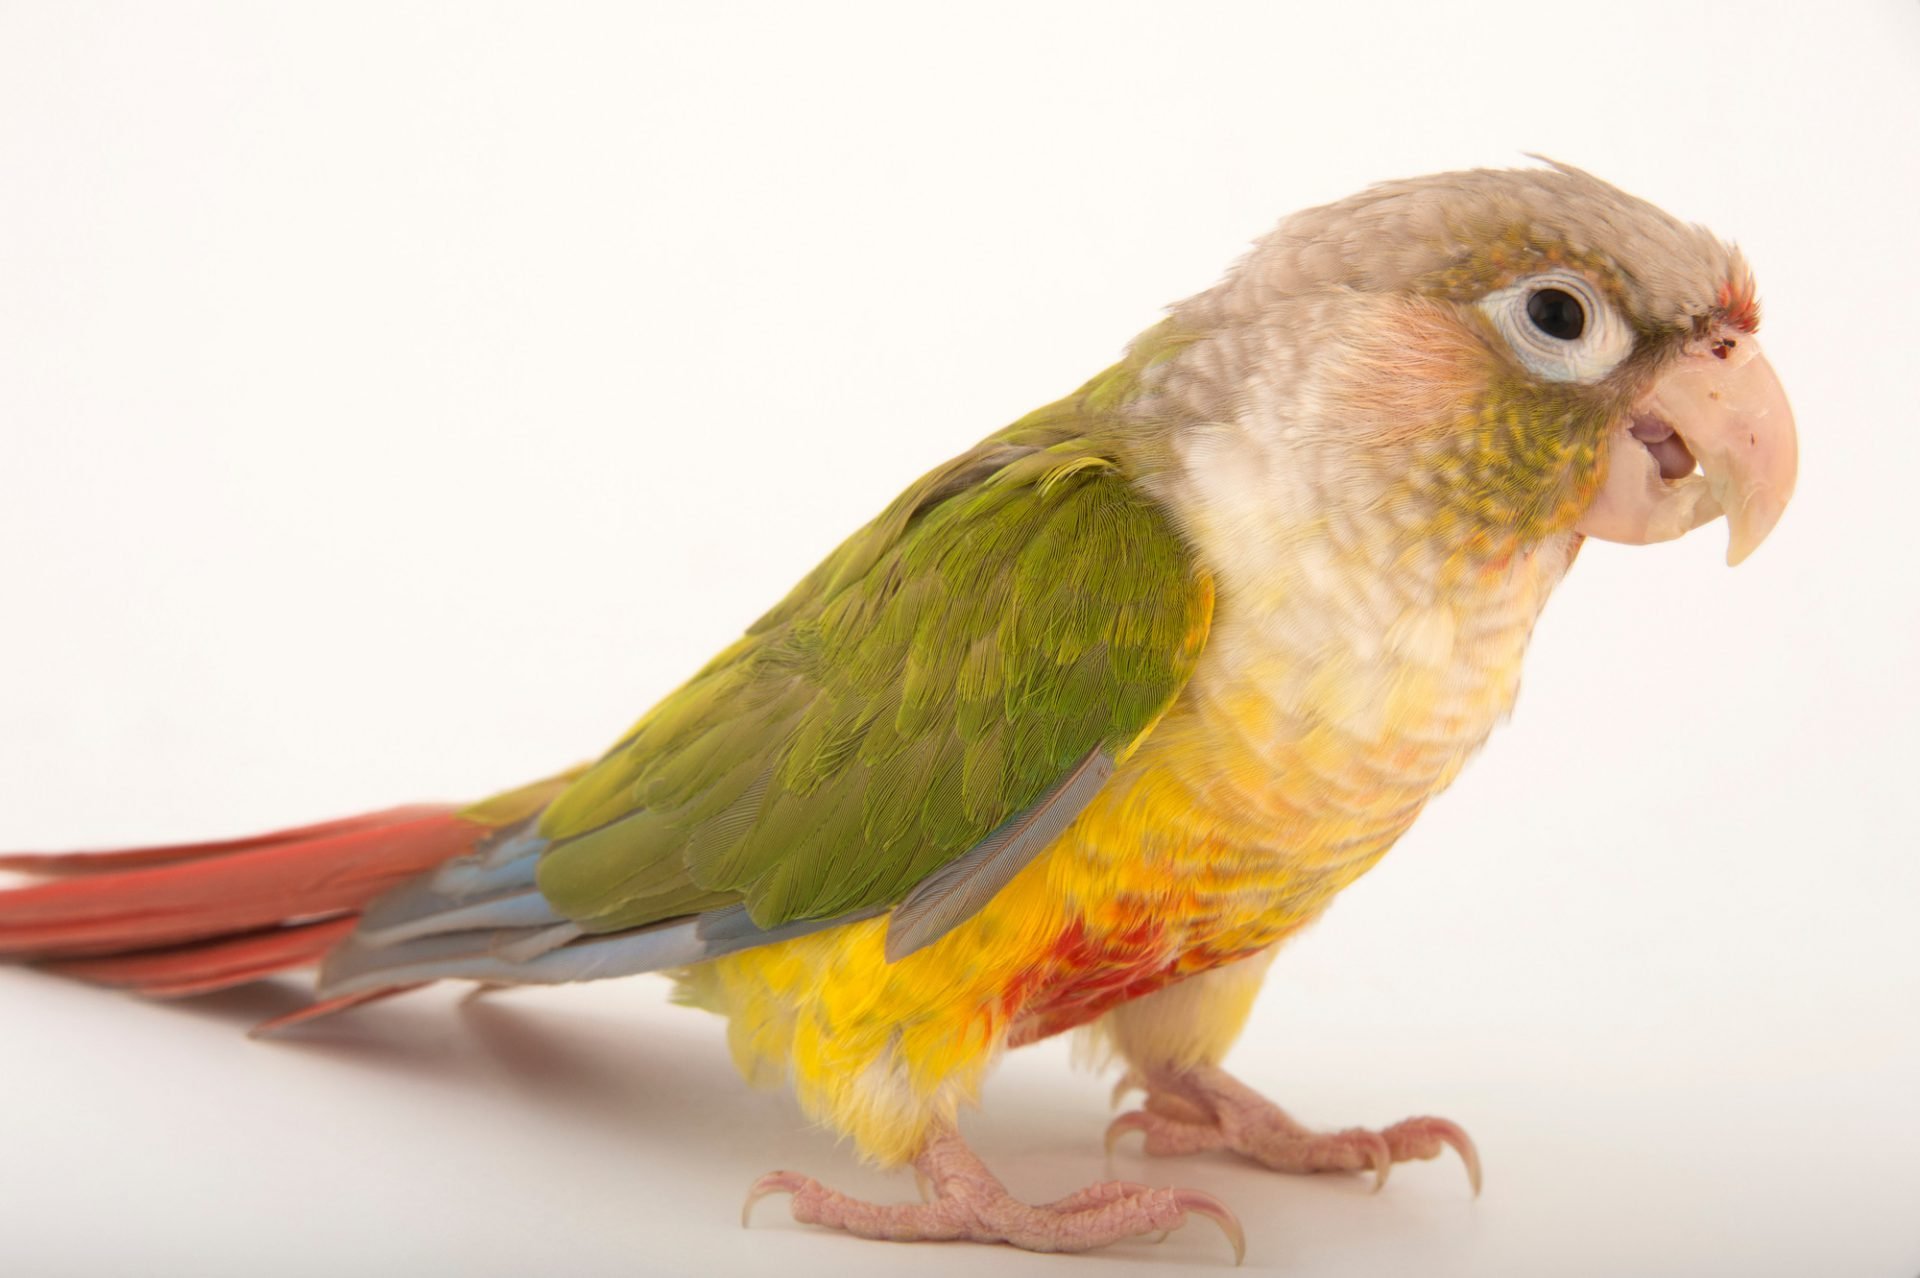 A pineapple color variant of the green-cheeked conure (Pyrrhura molinae). This bird is a male named Squirt.